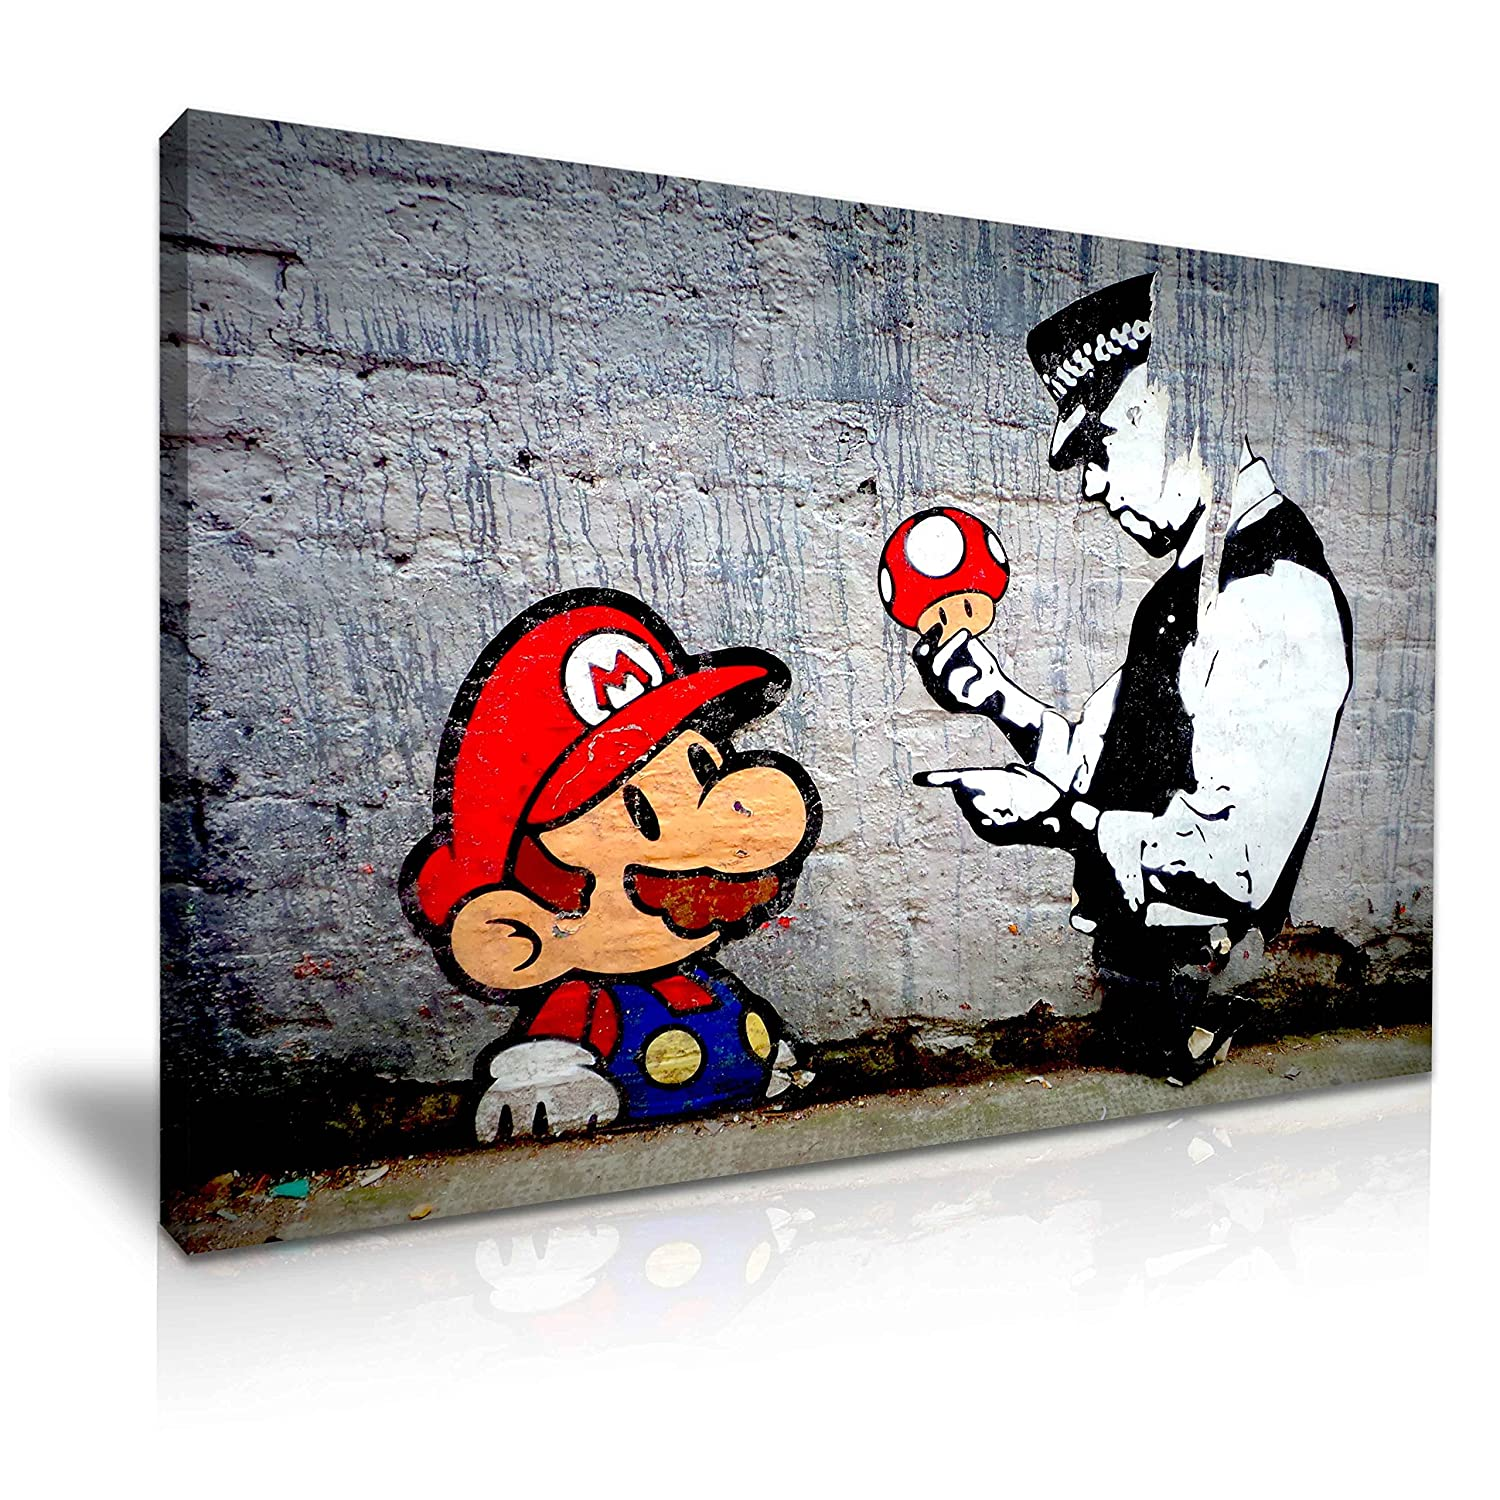 BANKSY MARIO AND POLICEMAN CANVAS PICTURE A3 SIZE